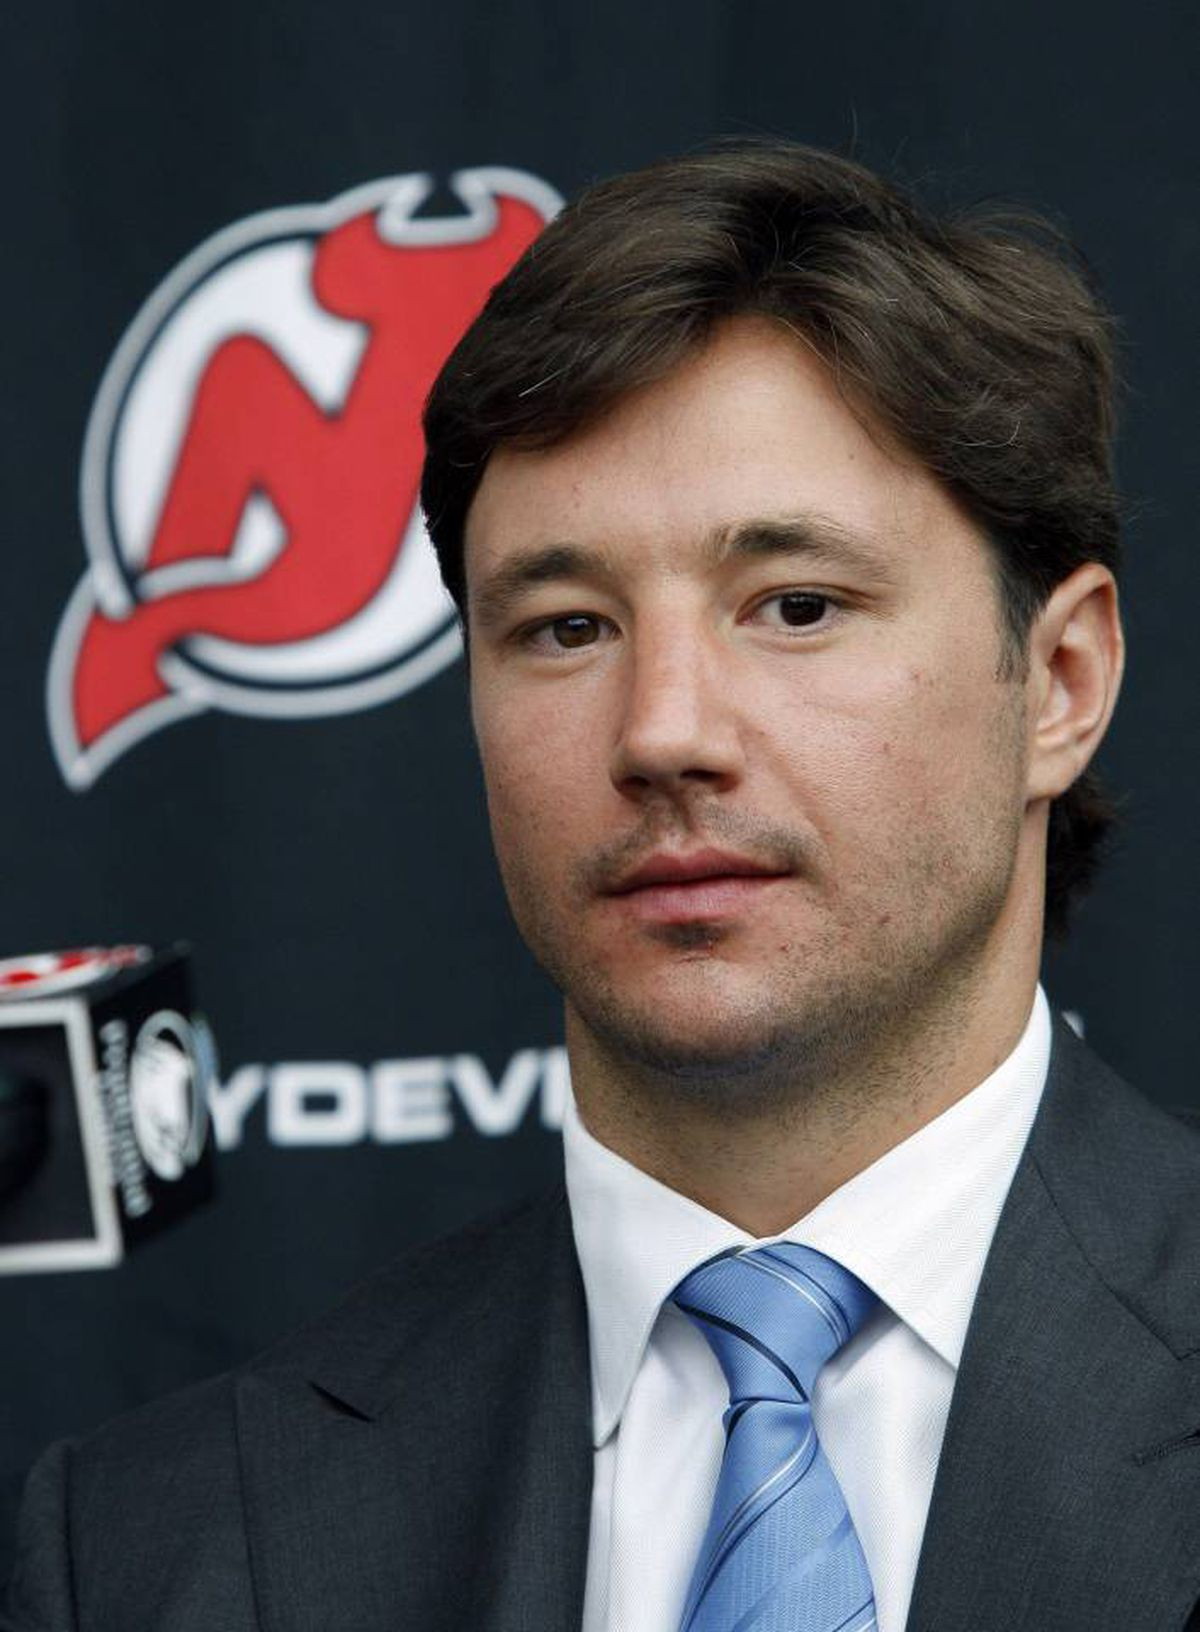 New Jersey Devils star forward Ilya Kovalchuk, of Russia, listens to a reporters question during a news conference in Newark, N.J., Tuesday, July 20, 2010. Kovalchuk is staying with the Devils after agreeing to a staggering 17-year, $102 million deal with the team.